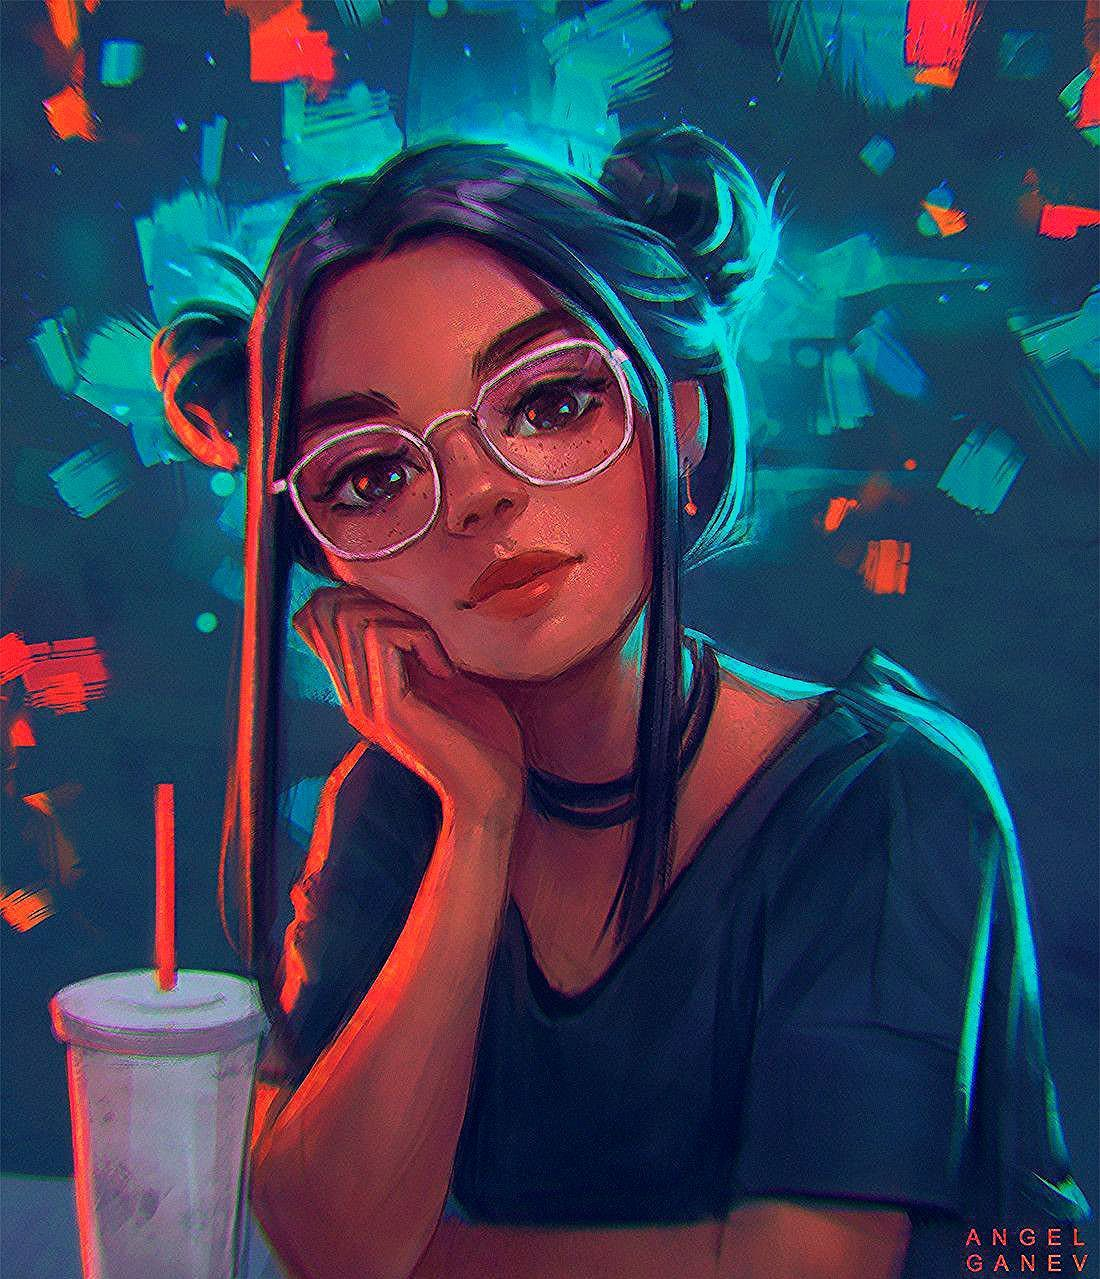 Digital Illustration finds of the day in 2020 (With images) | Girly art, Digital art girl, Drawings